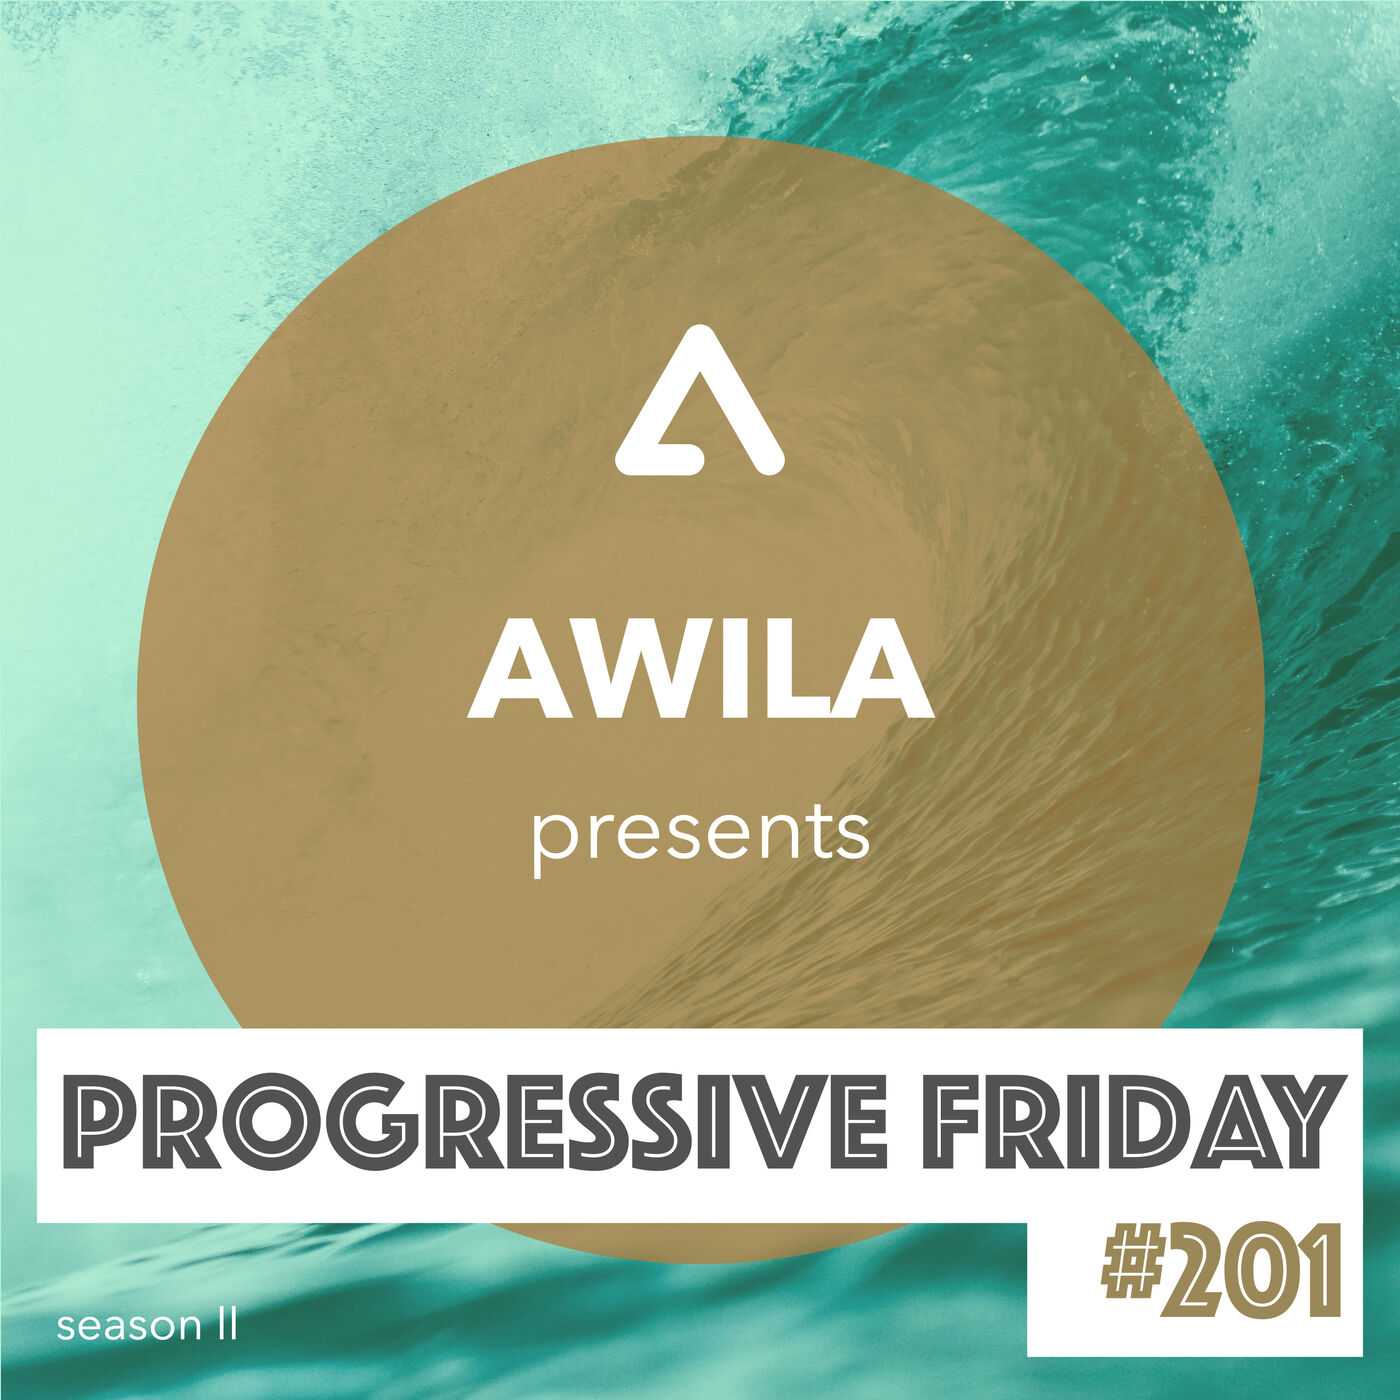 Progressive Friday #201